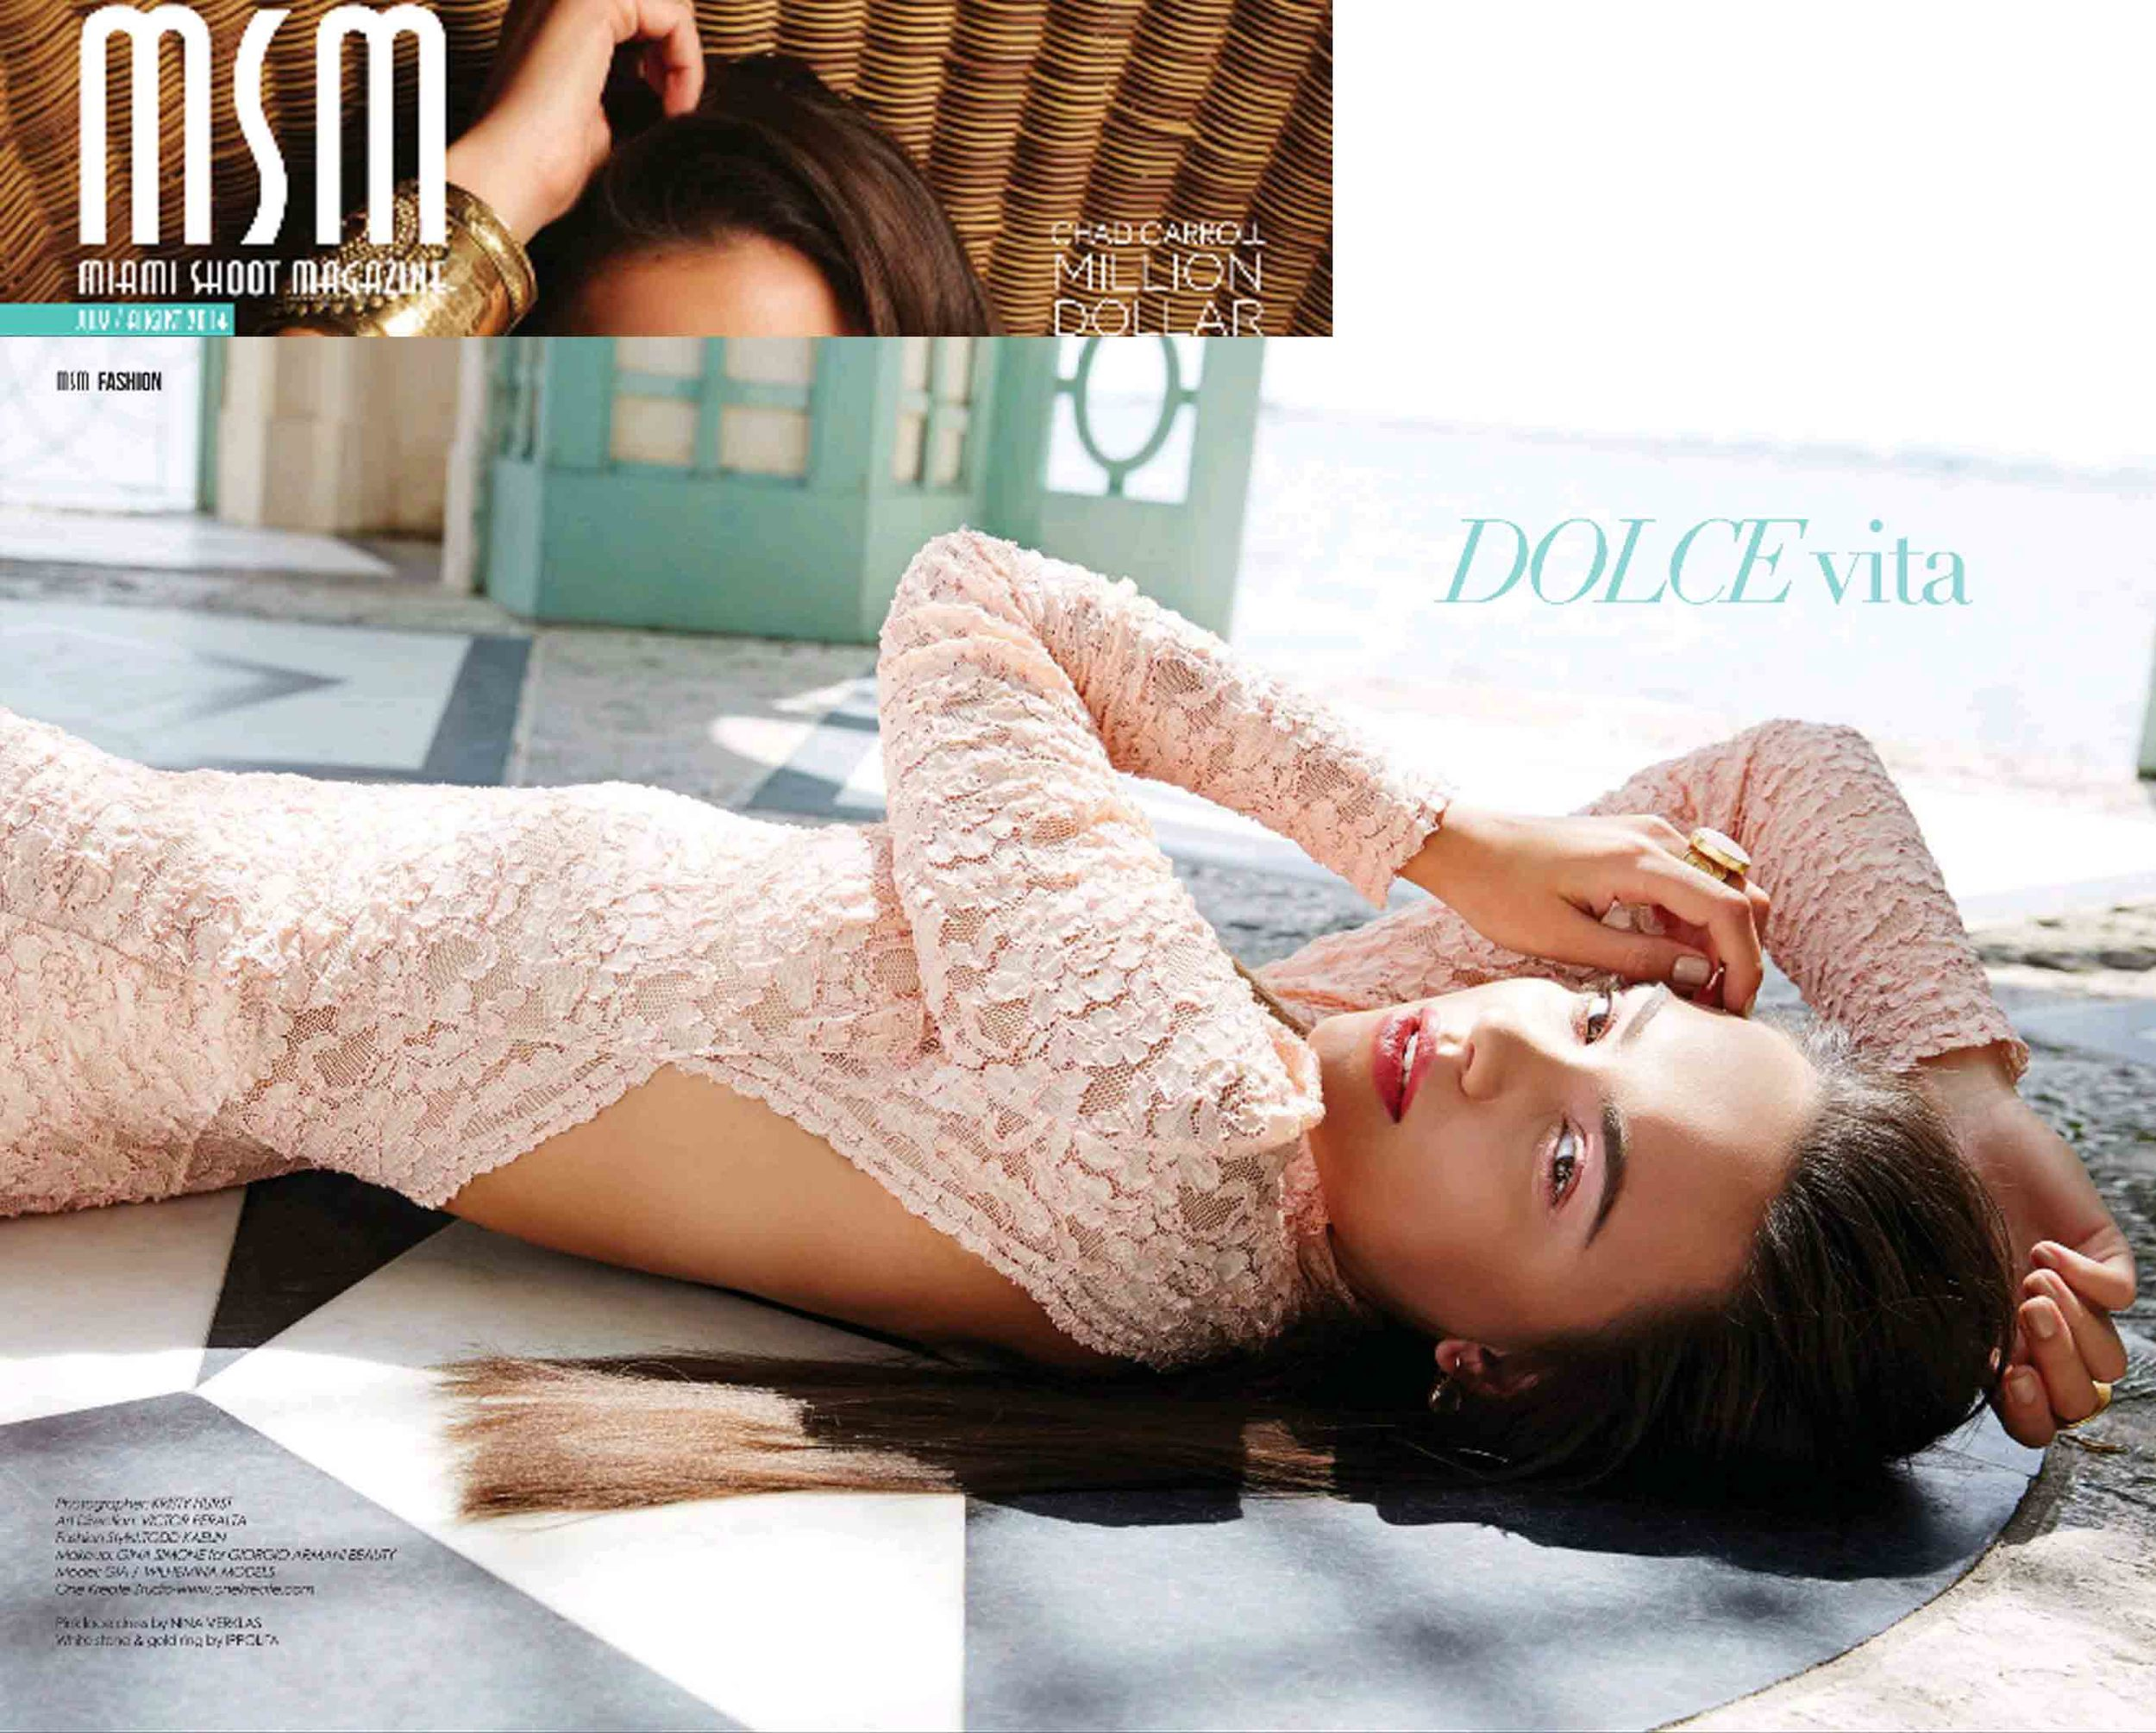 MSM Pink Lace dress 7.2014 w cover.JPG